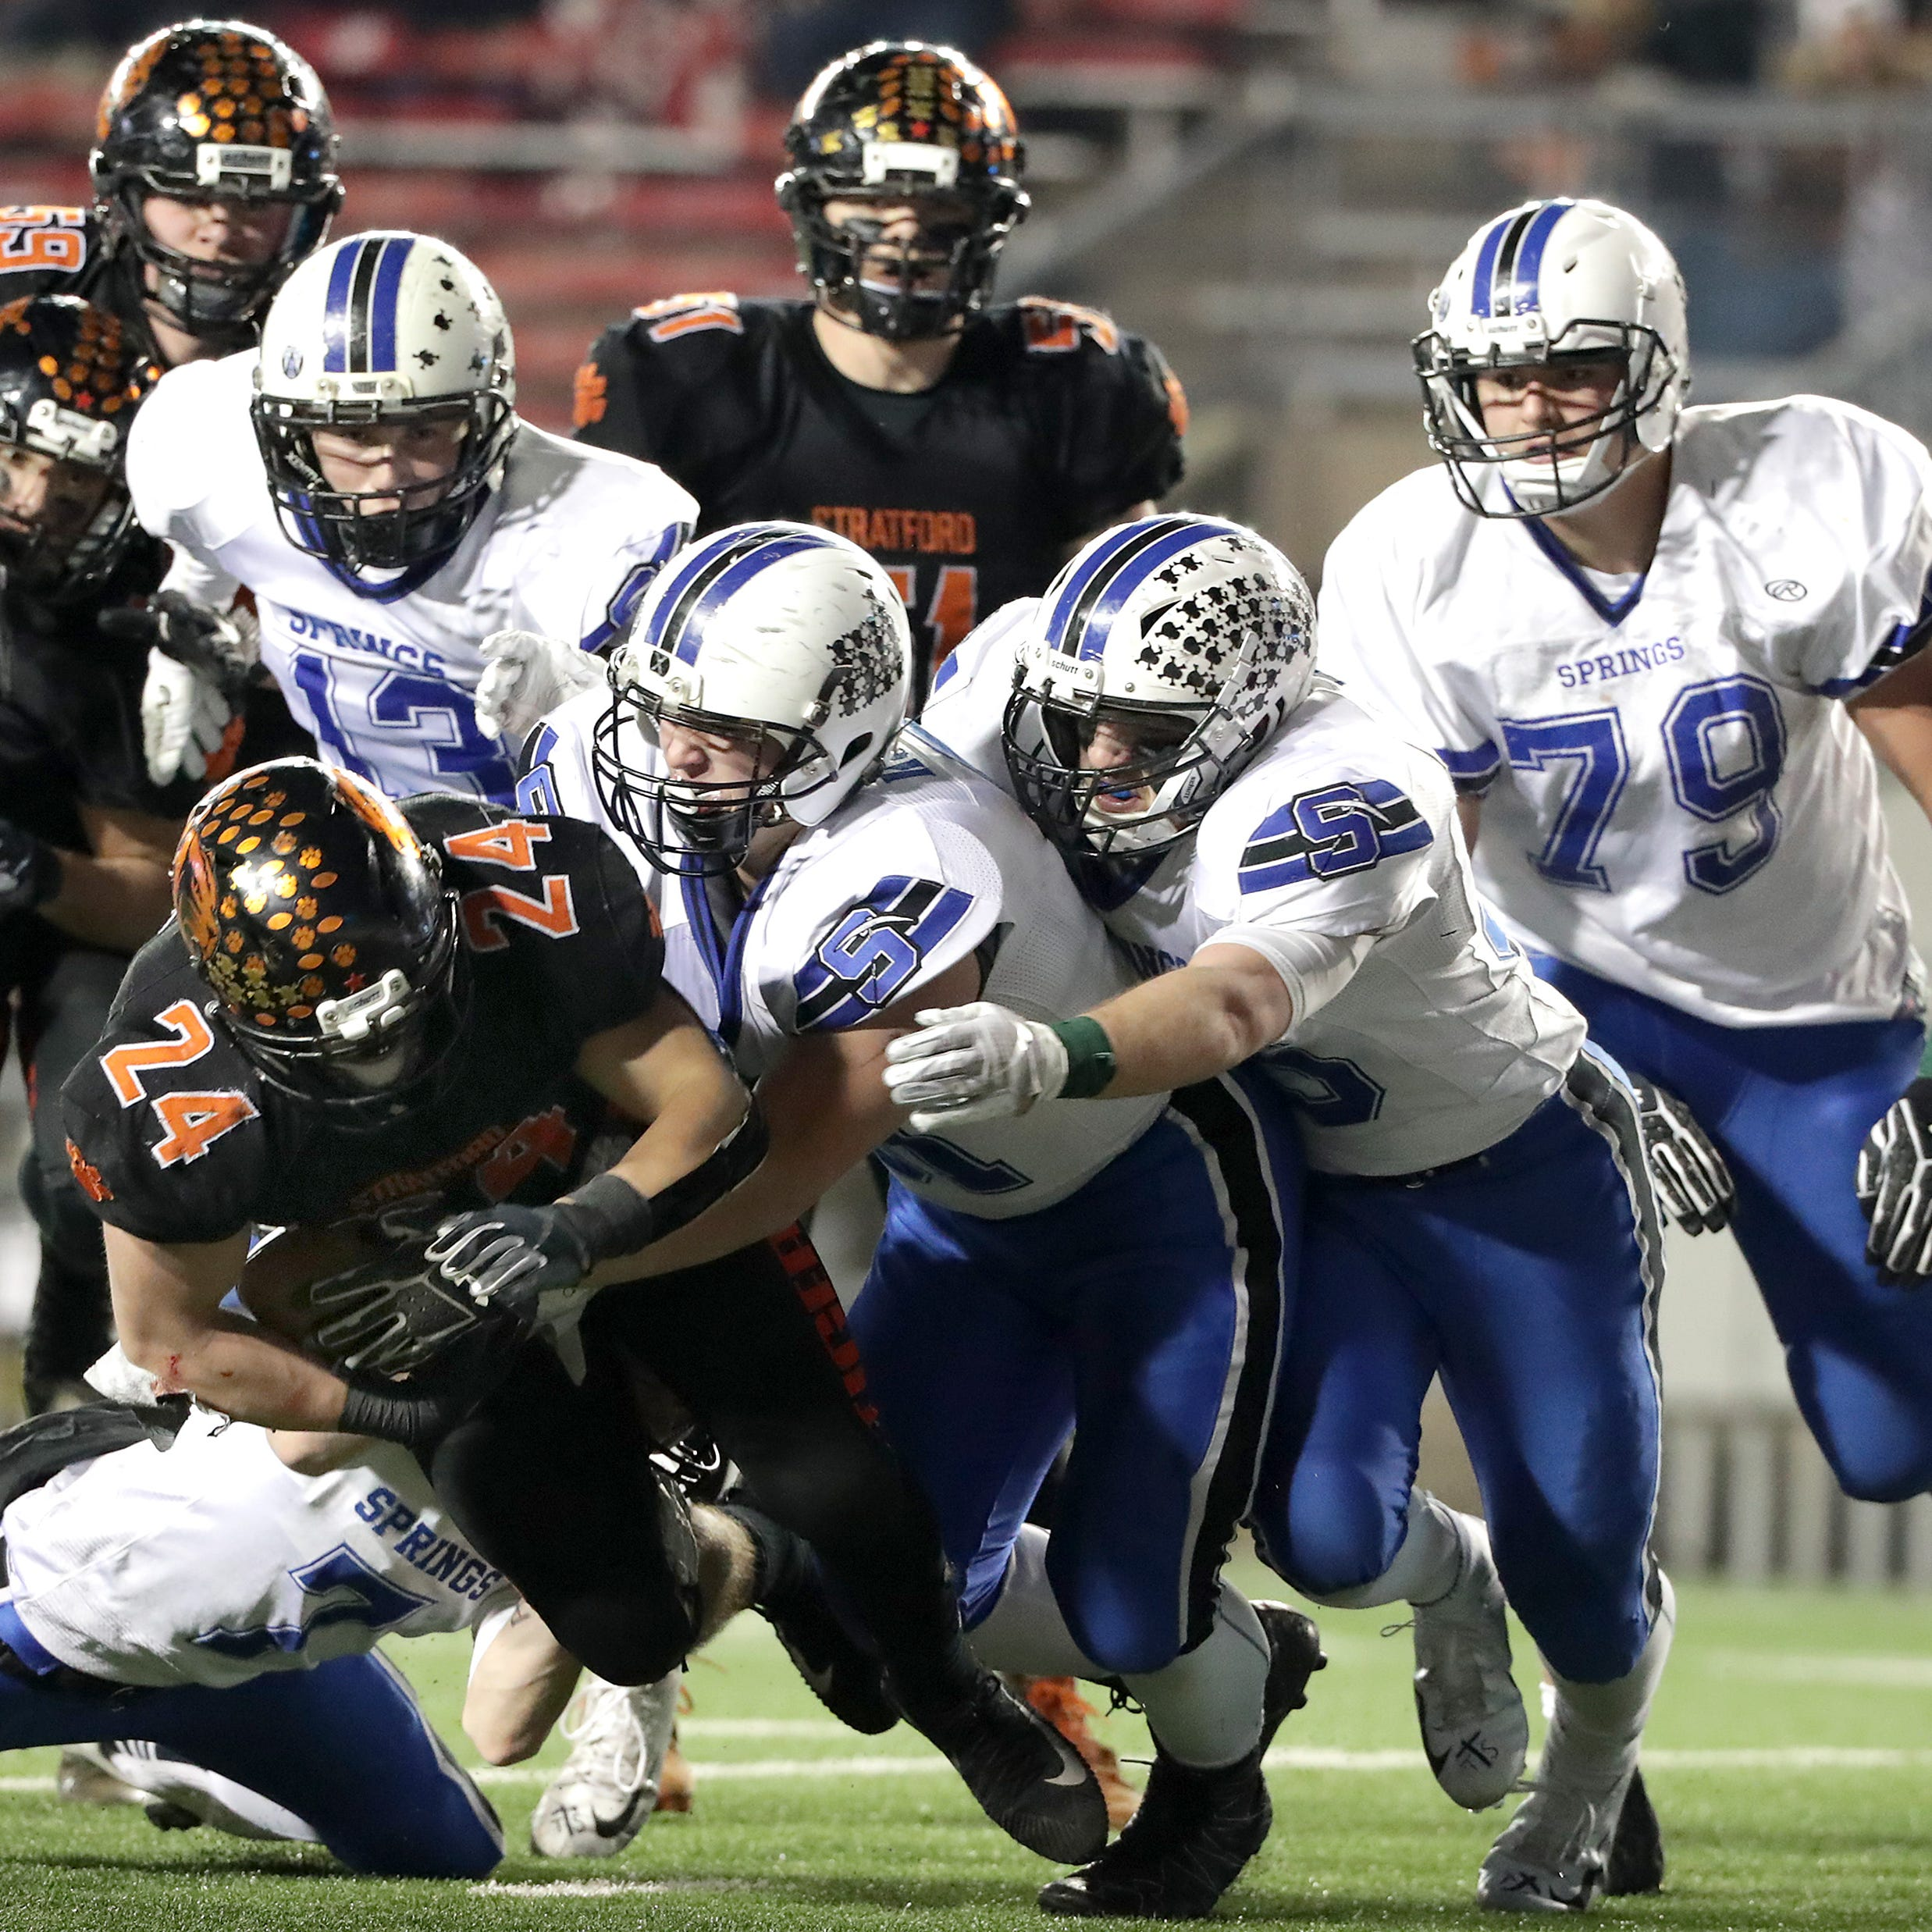 WIAA football: Stratford rolled the dice on fourth downs with mixed results